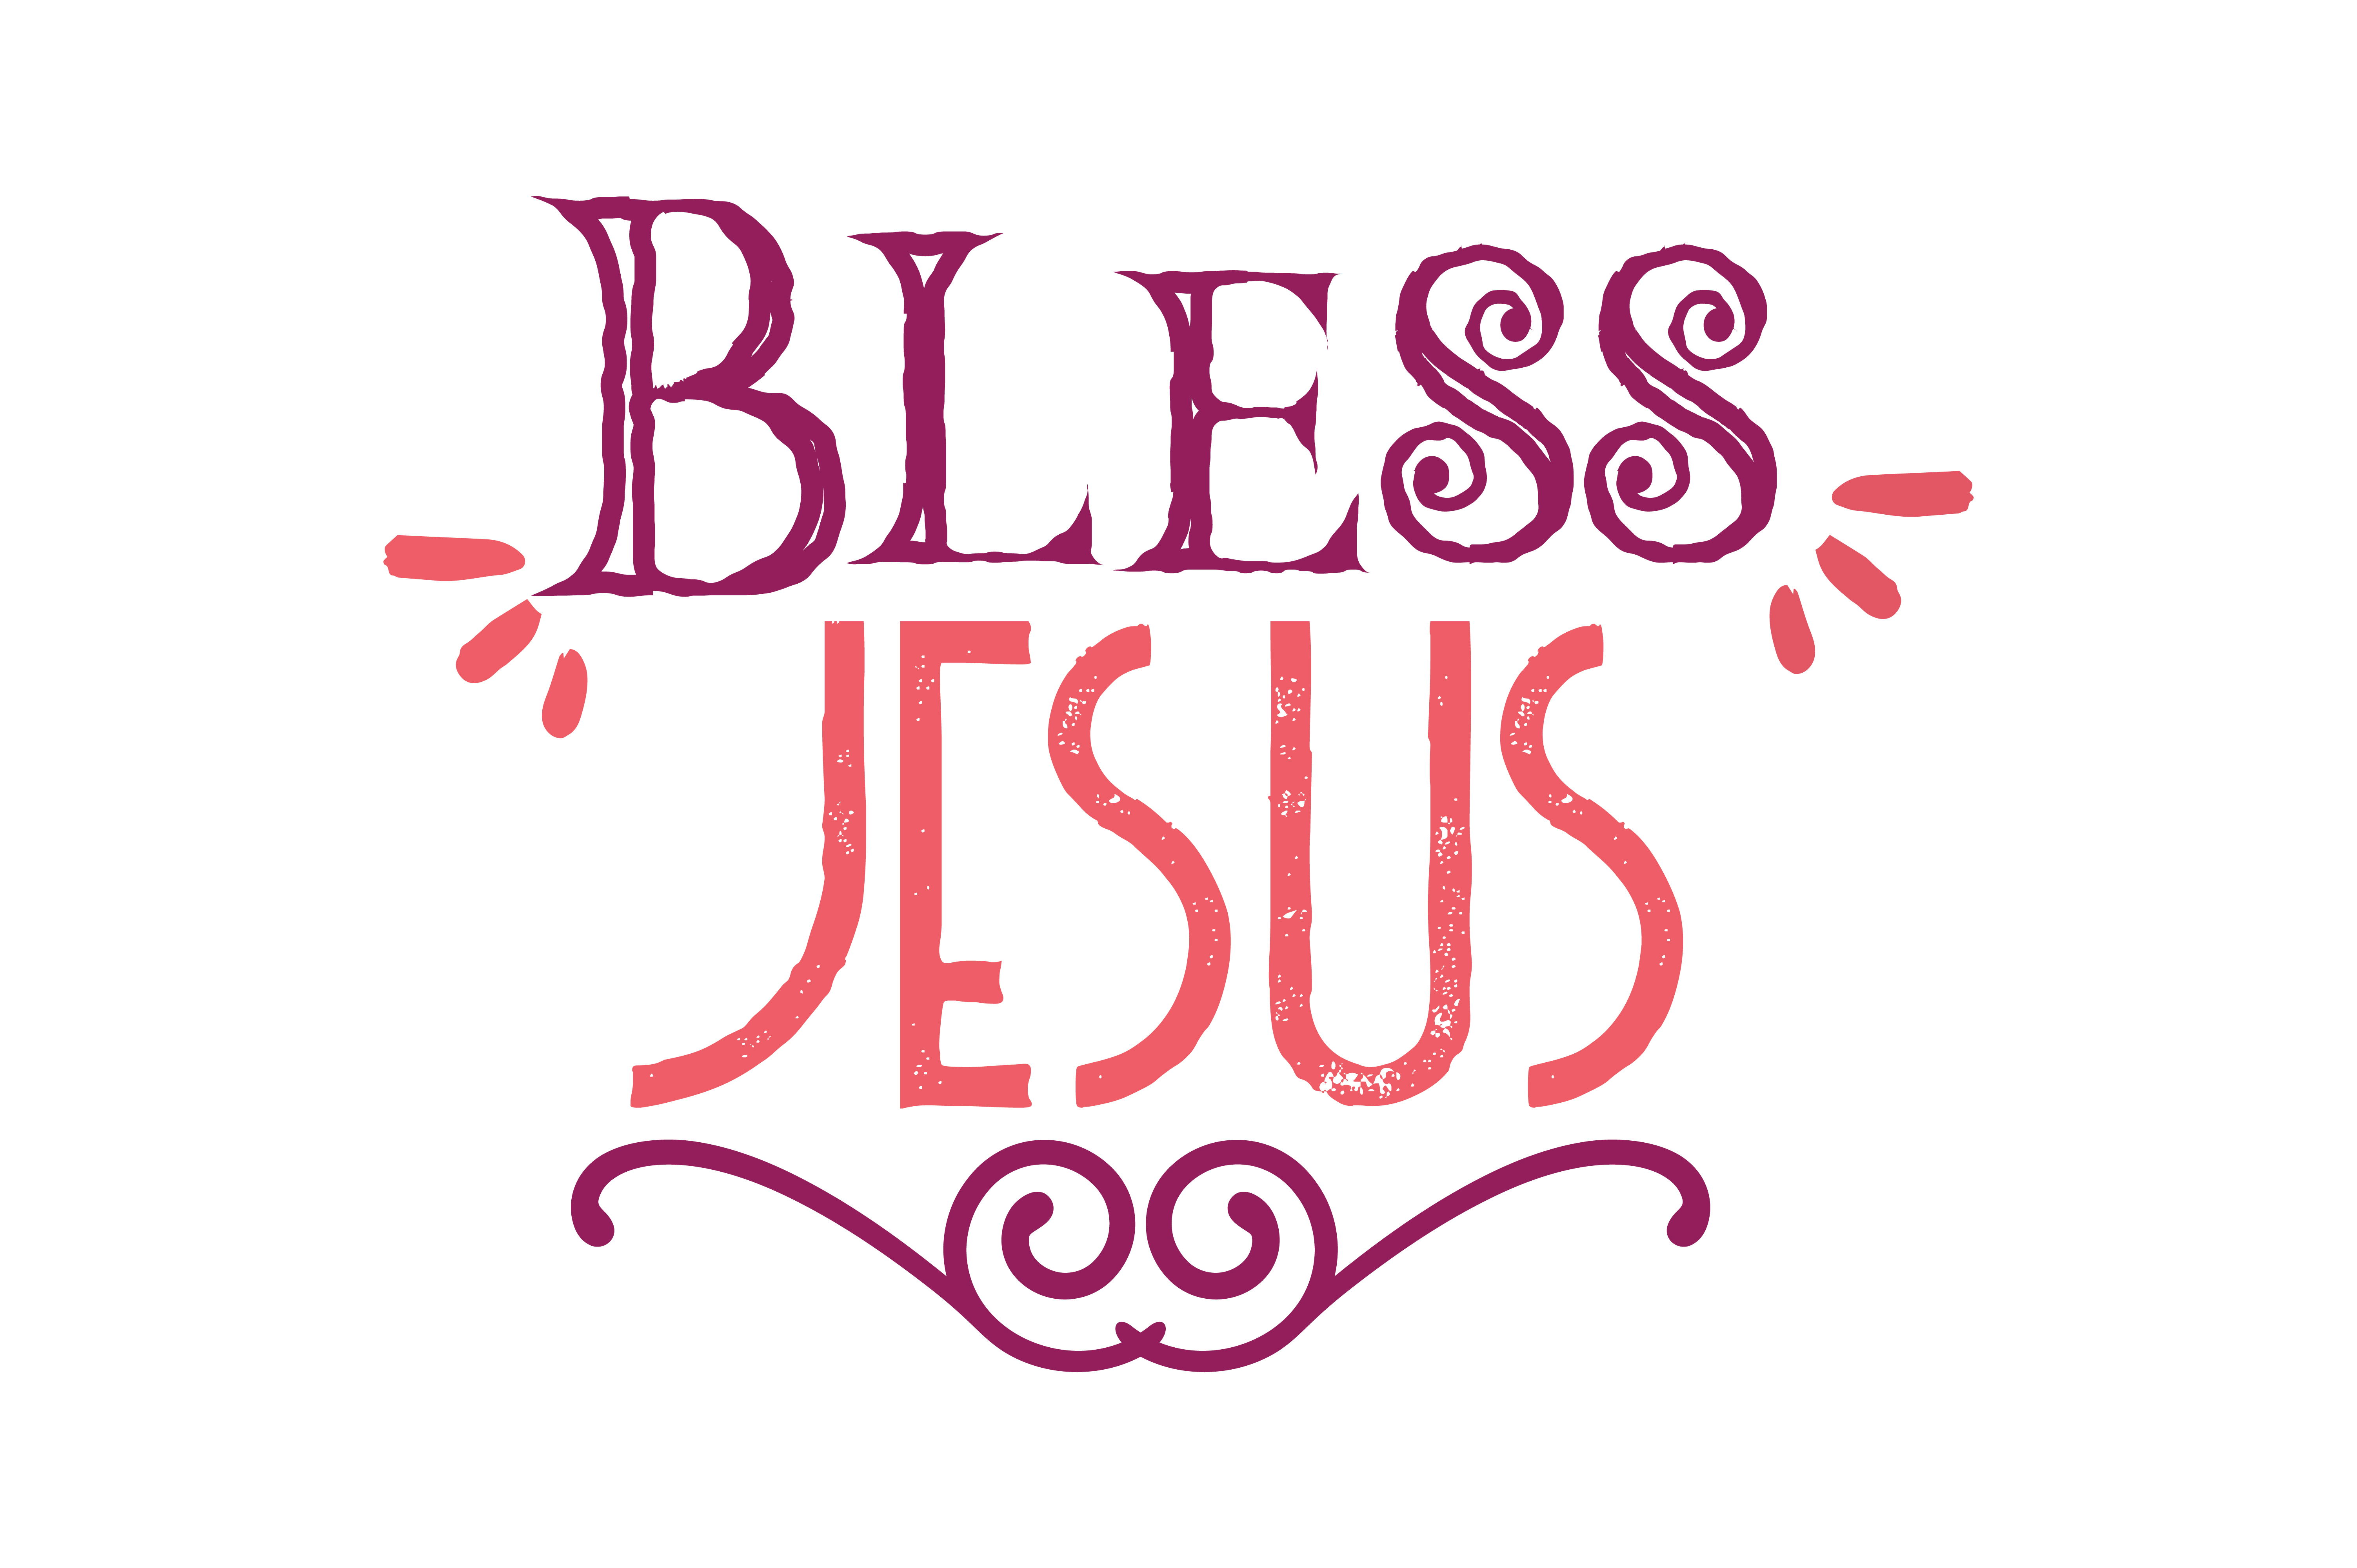 Download Free Bless Jesus Quote Svg Cut Graphic By Thelucky Creative Fabrica for Cricut Explore, Silhouette and other cutting machines.